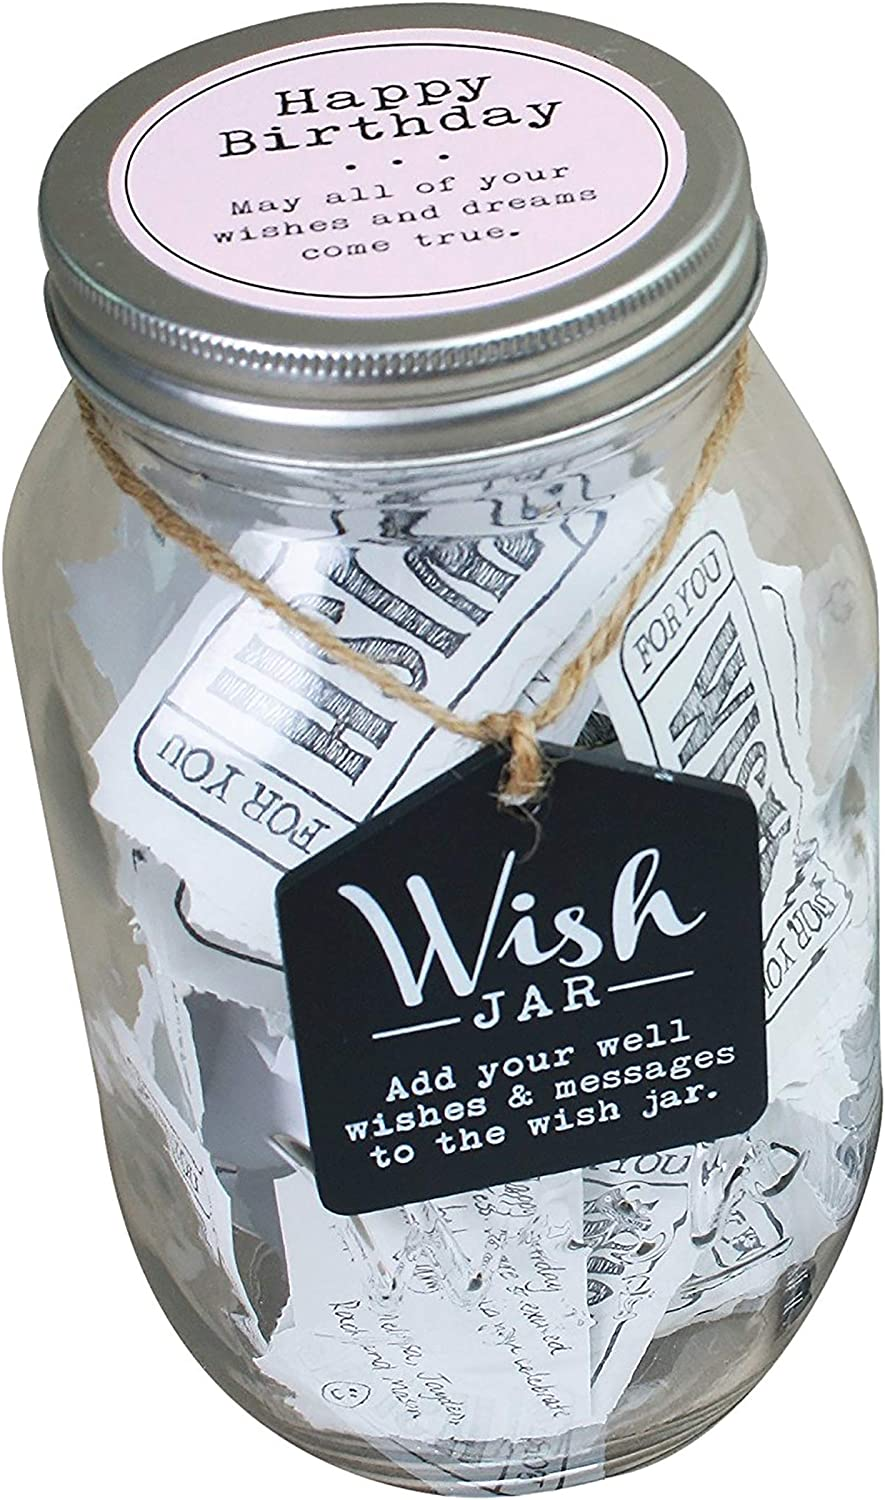 TOP SHELF Pink Happy Birthday Wish Jar ; Keepsake Gift for Her ; Unique and Thoughtful Gift Ideas for Mother, Grandma, Daughter, and Best Friend ; Kit Comes with 100 Tickets and Decorative Lid